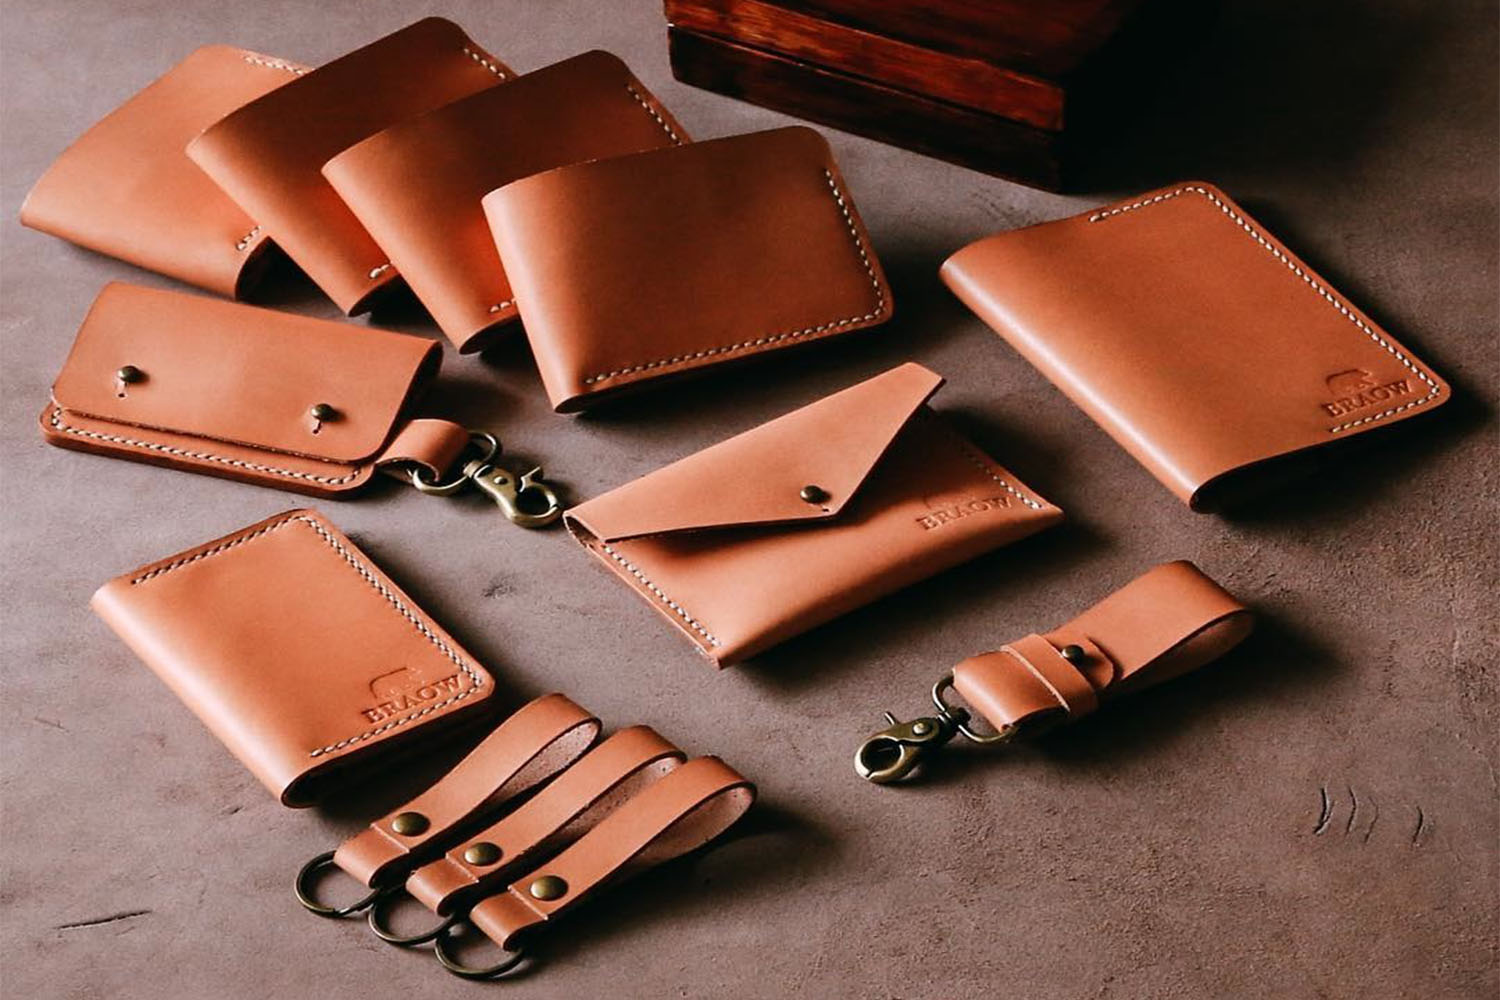 Uncategorized Quality Of Leather nhbl braow goods timelessness and durability of high quality leather goods